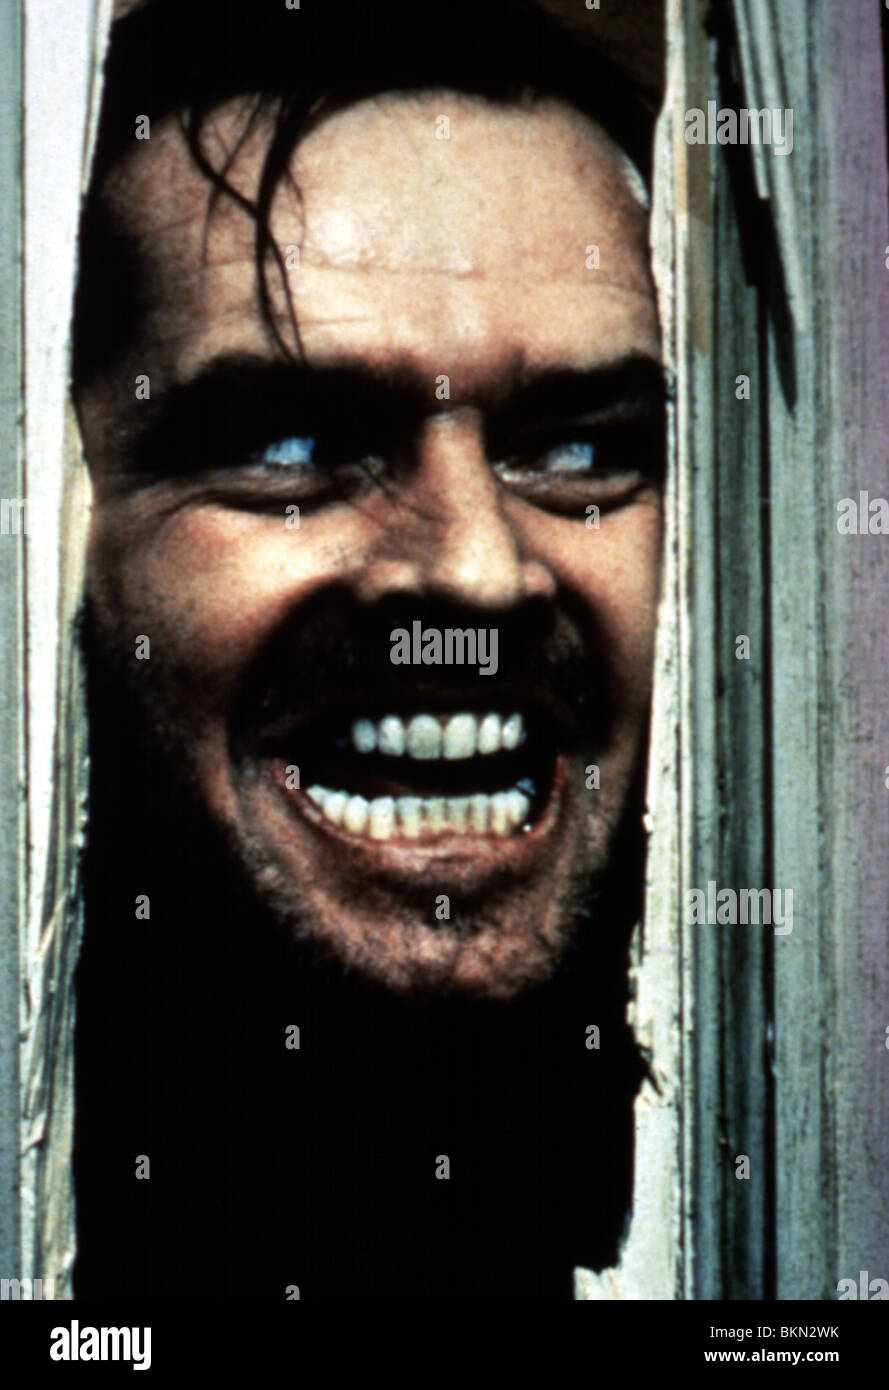 THE SHINING (1980) JACK NICHOLSON SHI 005 - Stock Image